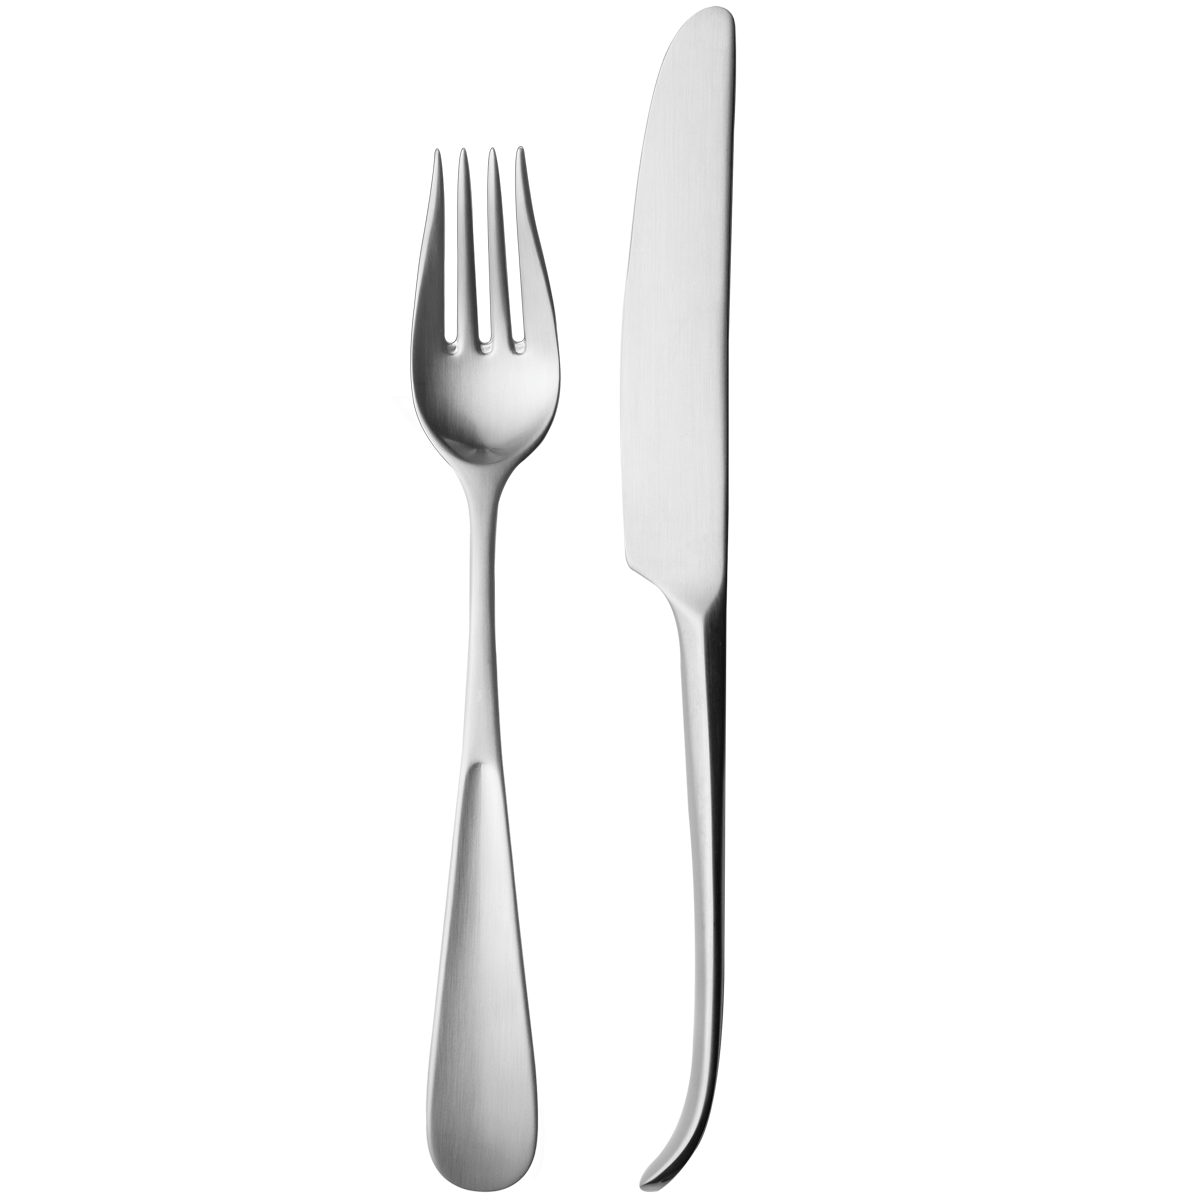 Knife and fork clipart cliparts others art inspiration 2 - Fancy Fork PNG Black And White